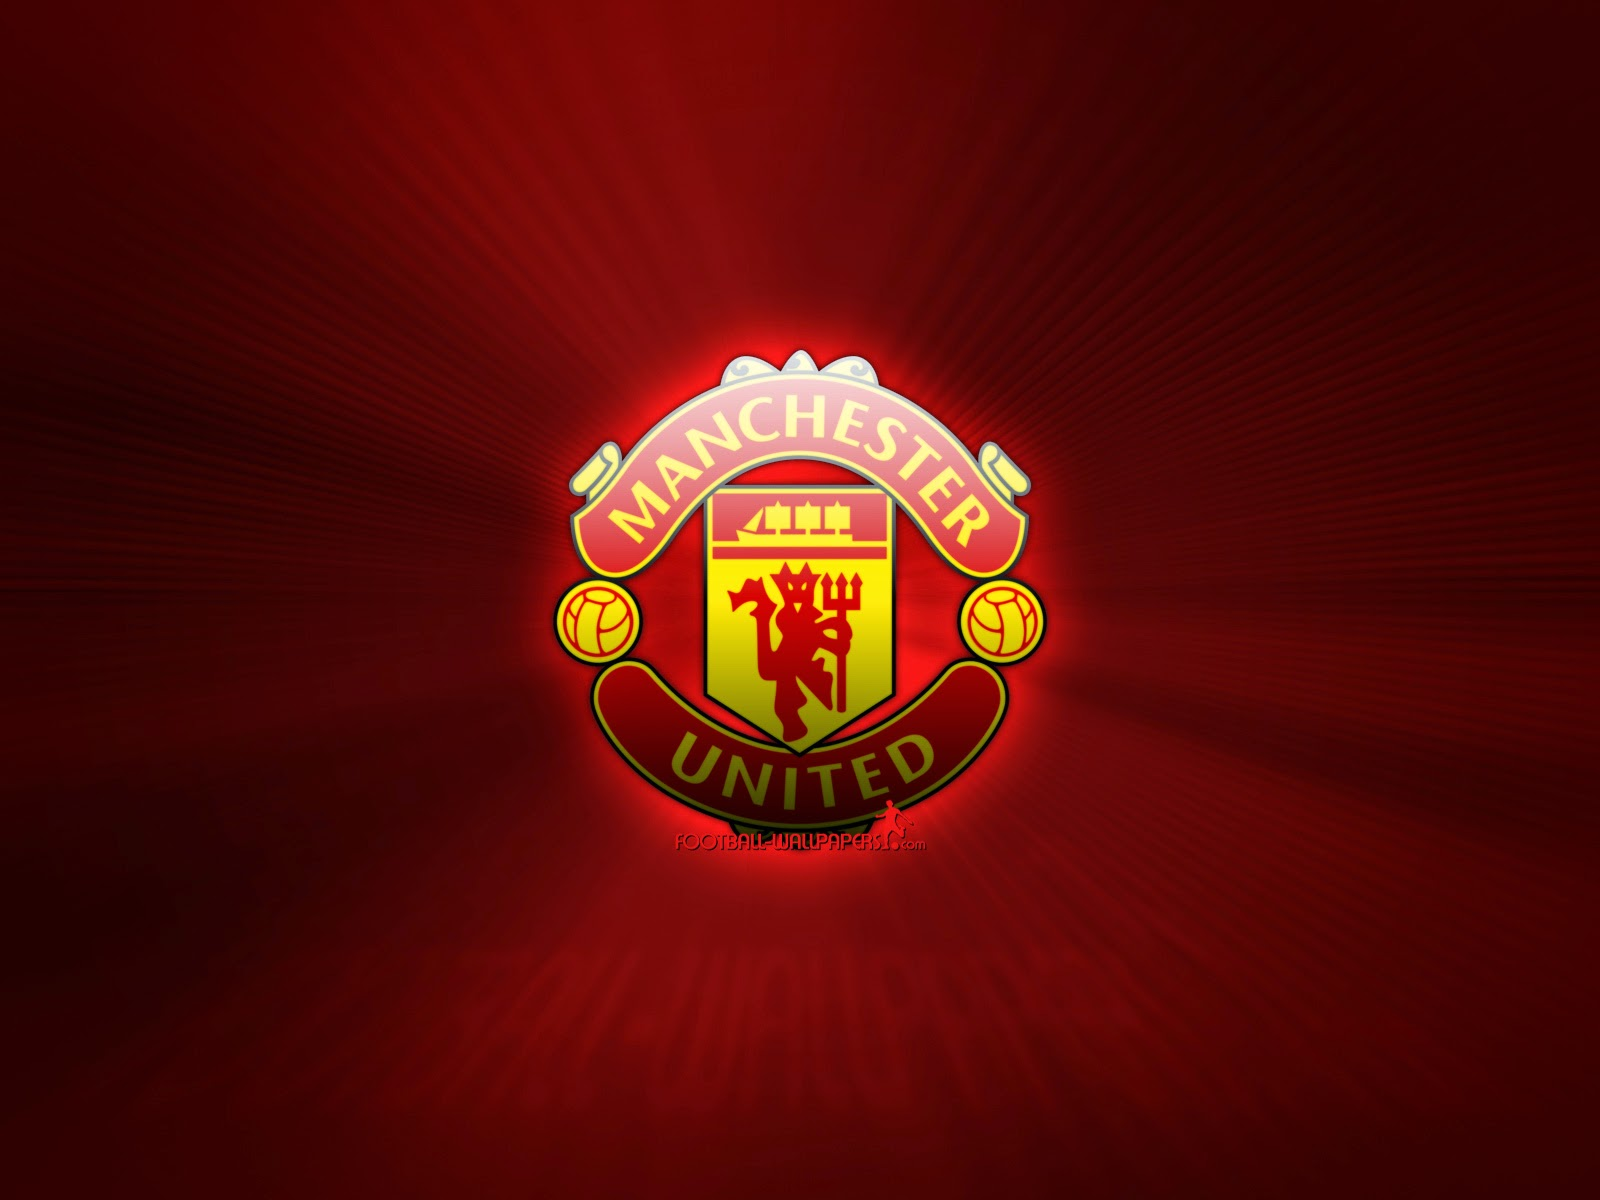 Hd Wallpapers Of Manchester United Wallpaper For Mobile 1600x1200